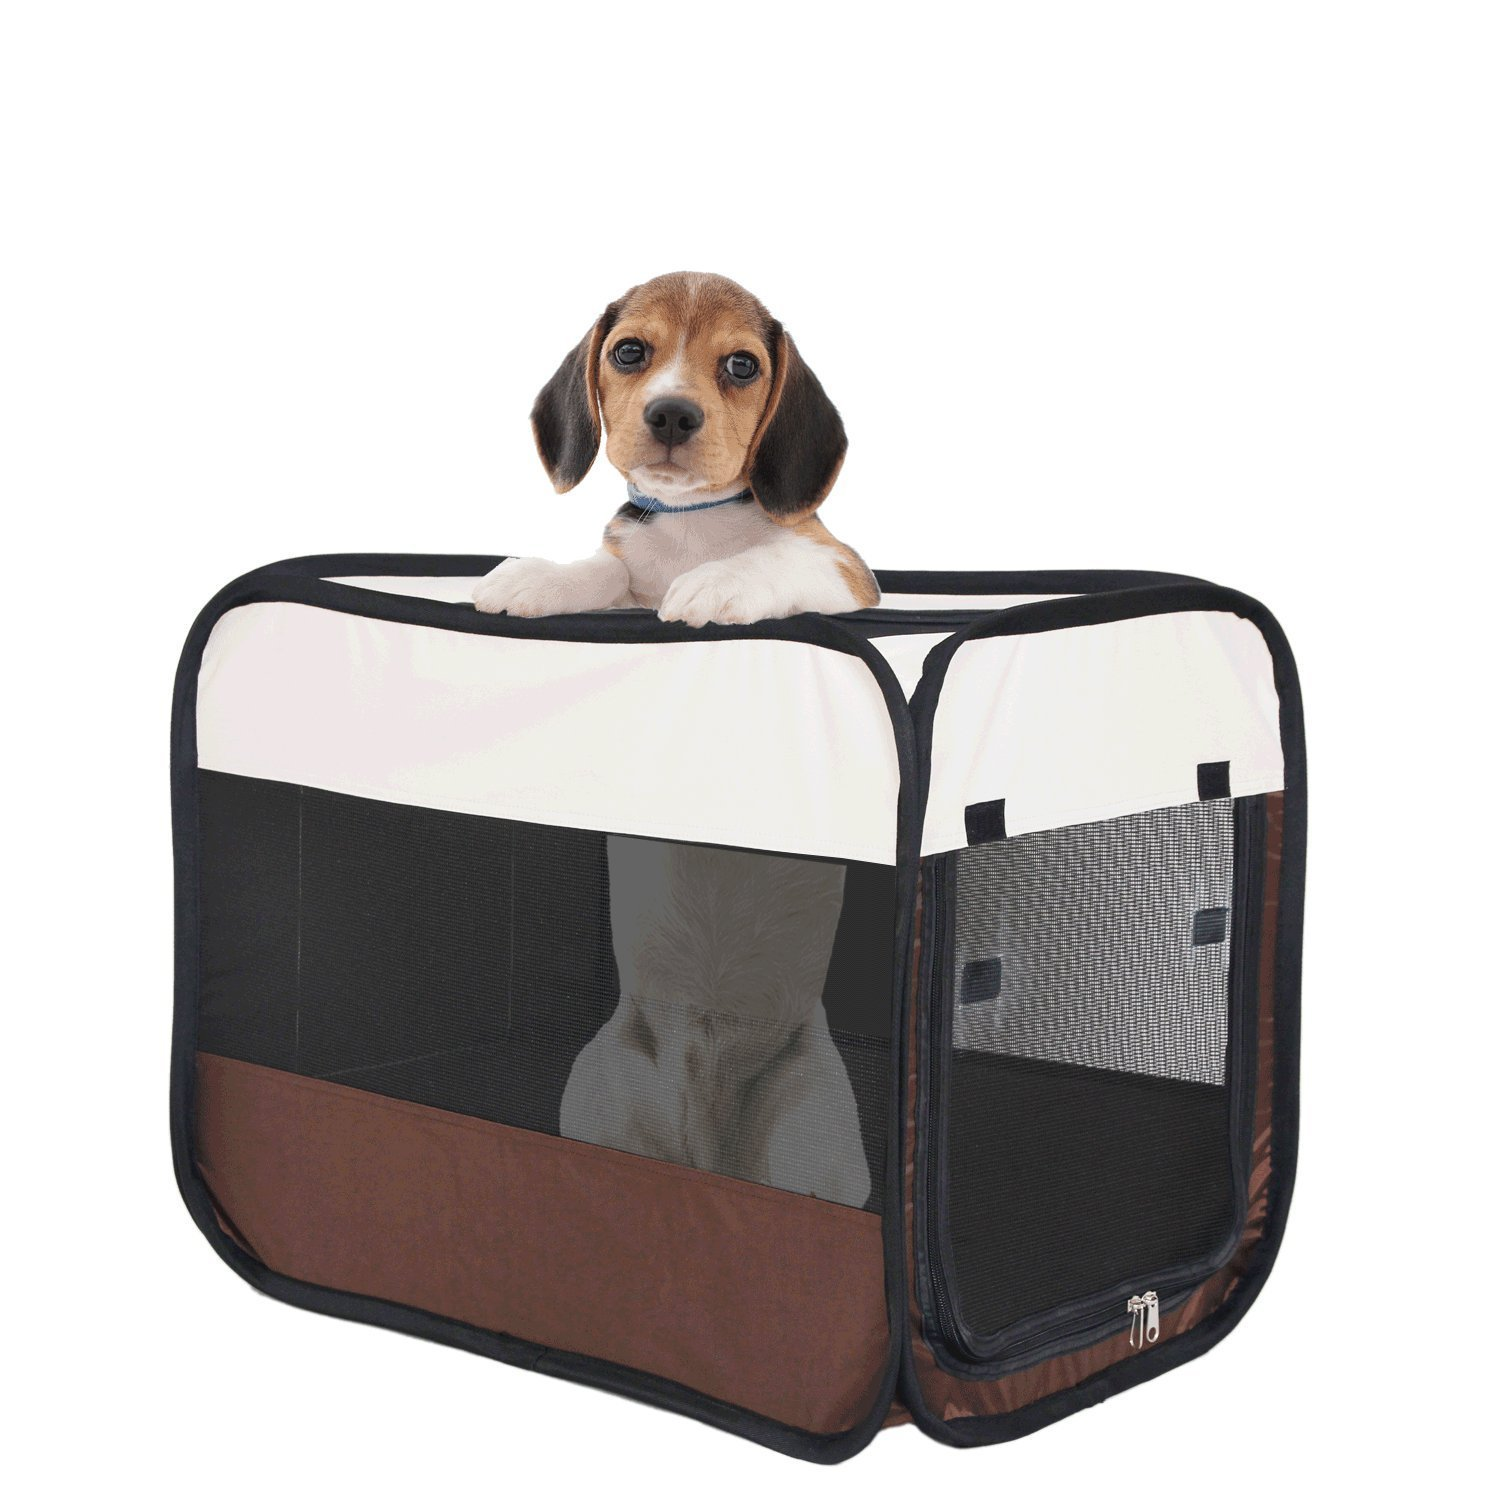 Soft Pet Crate - Foldable and Portable Playpen Tent/Gray Cage/Kennel with 4 Panels Indoor & Outdoor Travel Use for Dogs, Cats, Rabbits or Other Small Animals